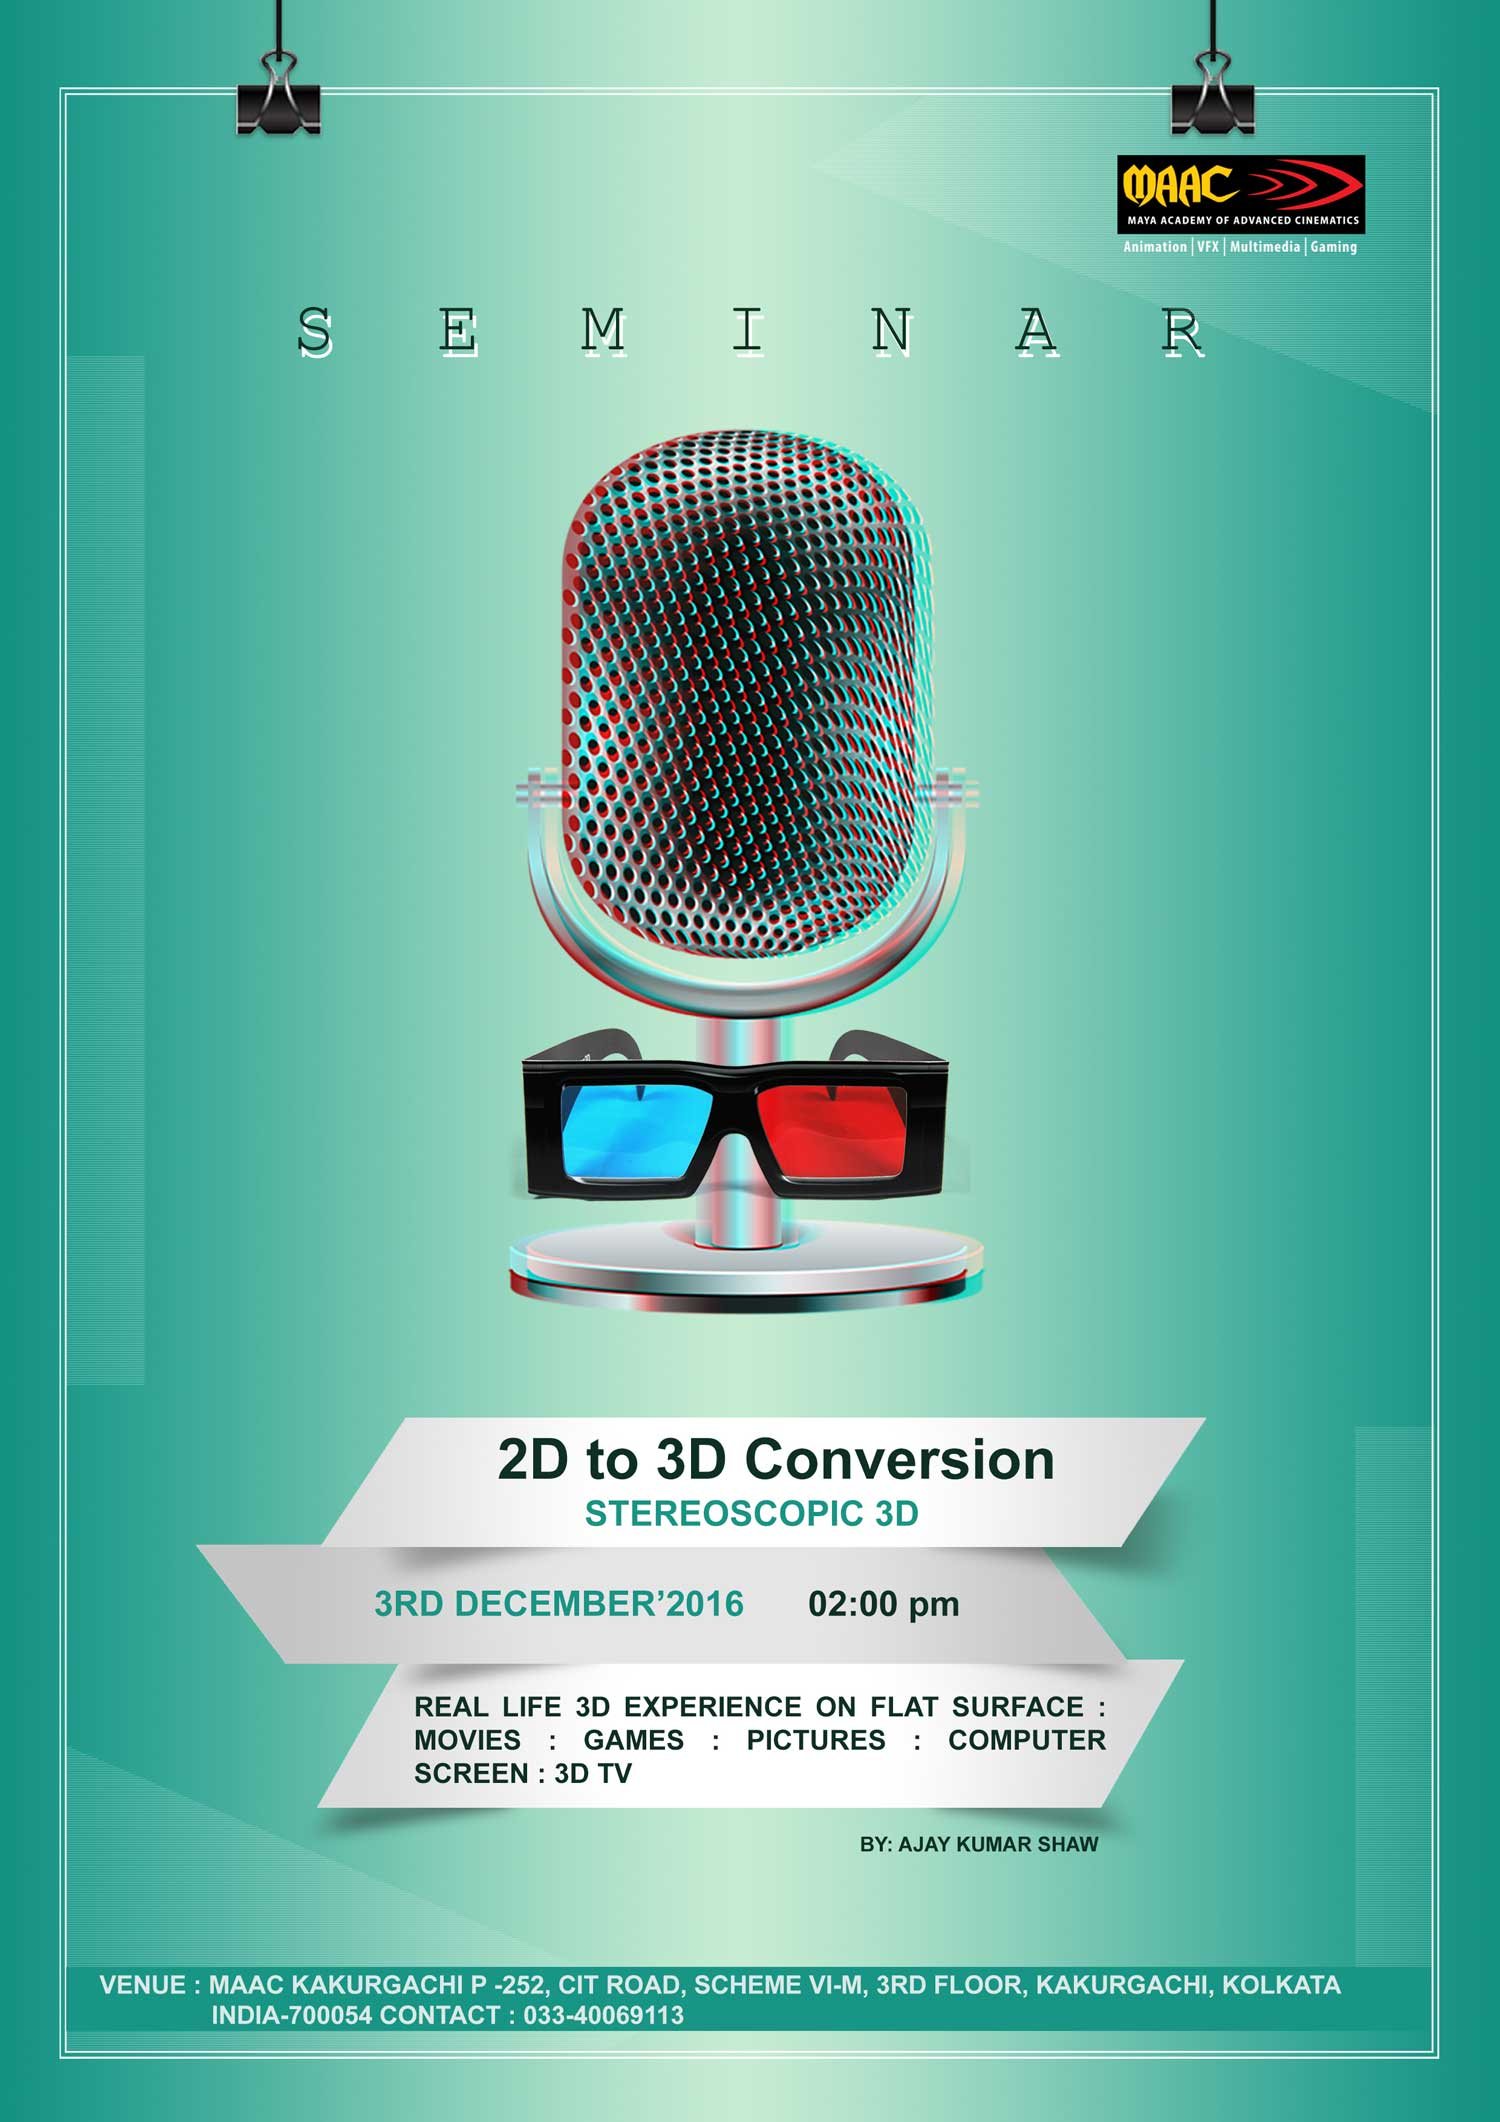 Weekly Master Class on 2D to 3D Conversion (Stereoscopic 3D) - Ajay Kumar Shaw